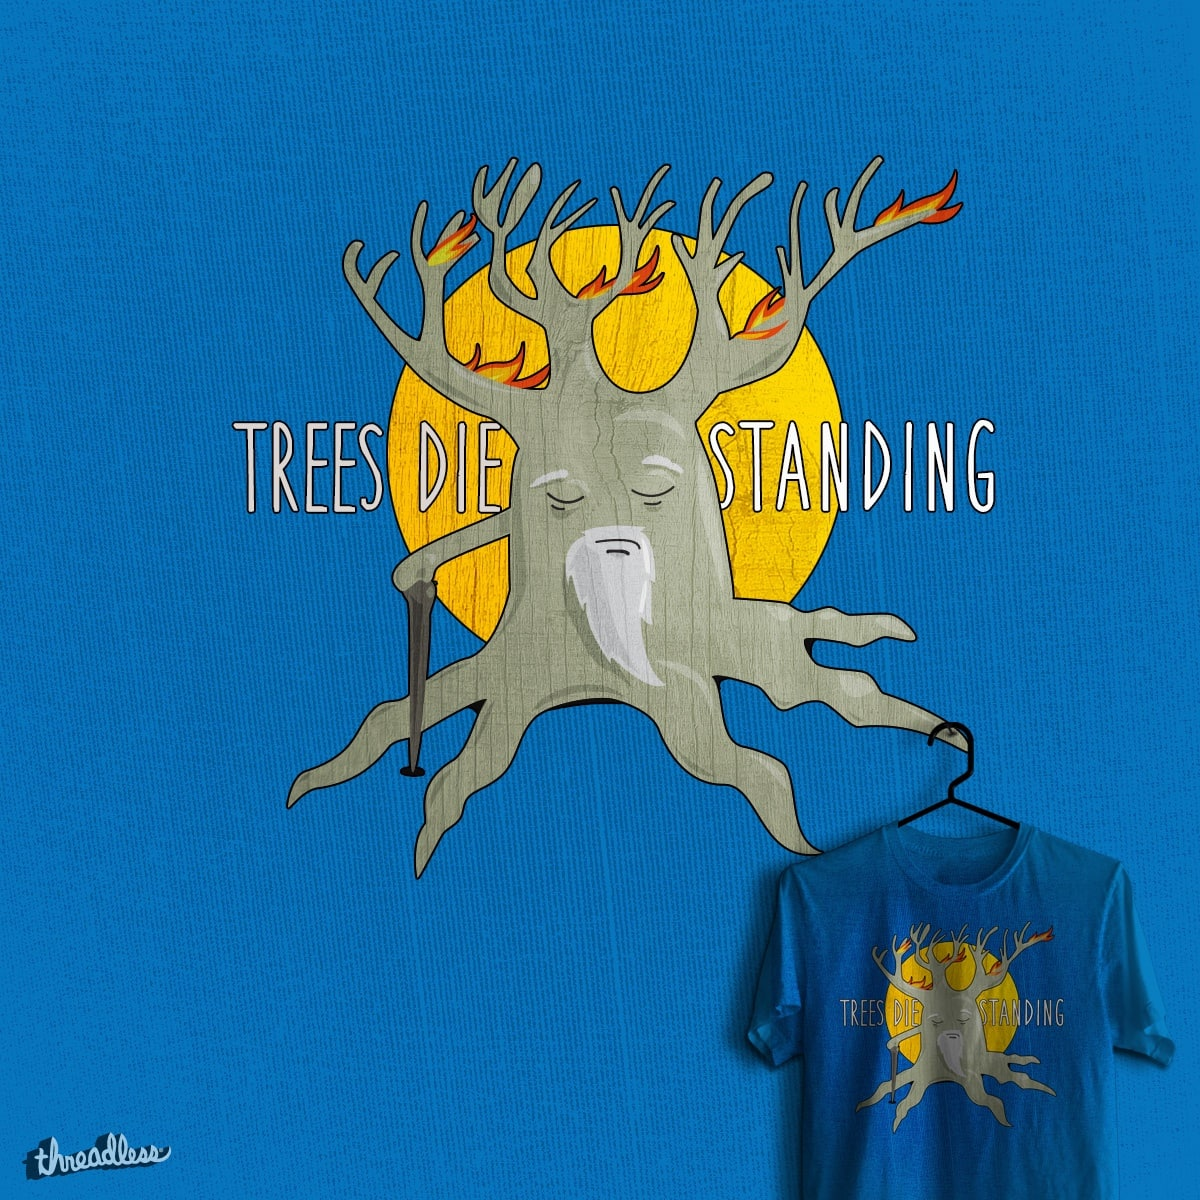 Trees die standing by Larage on Threadless